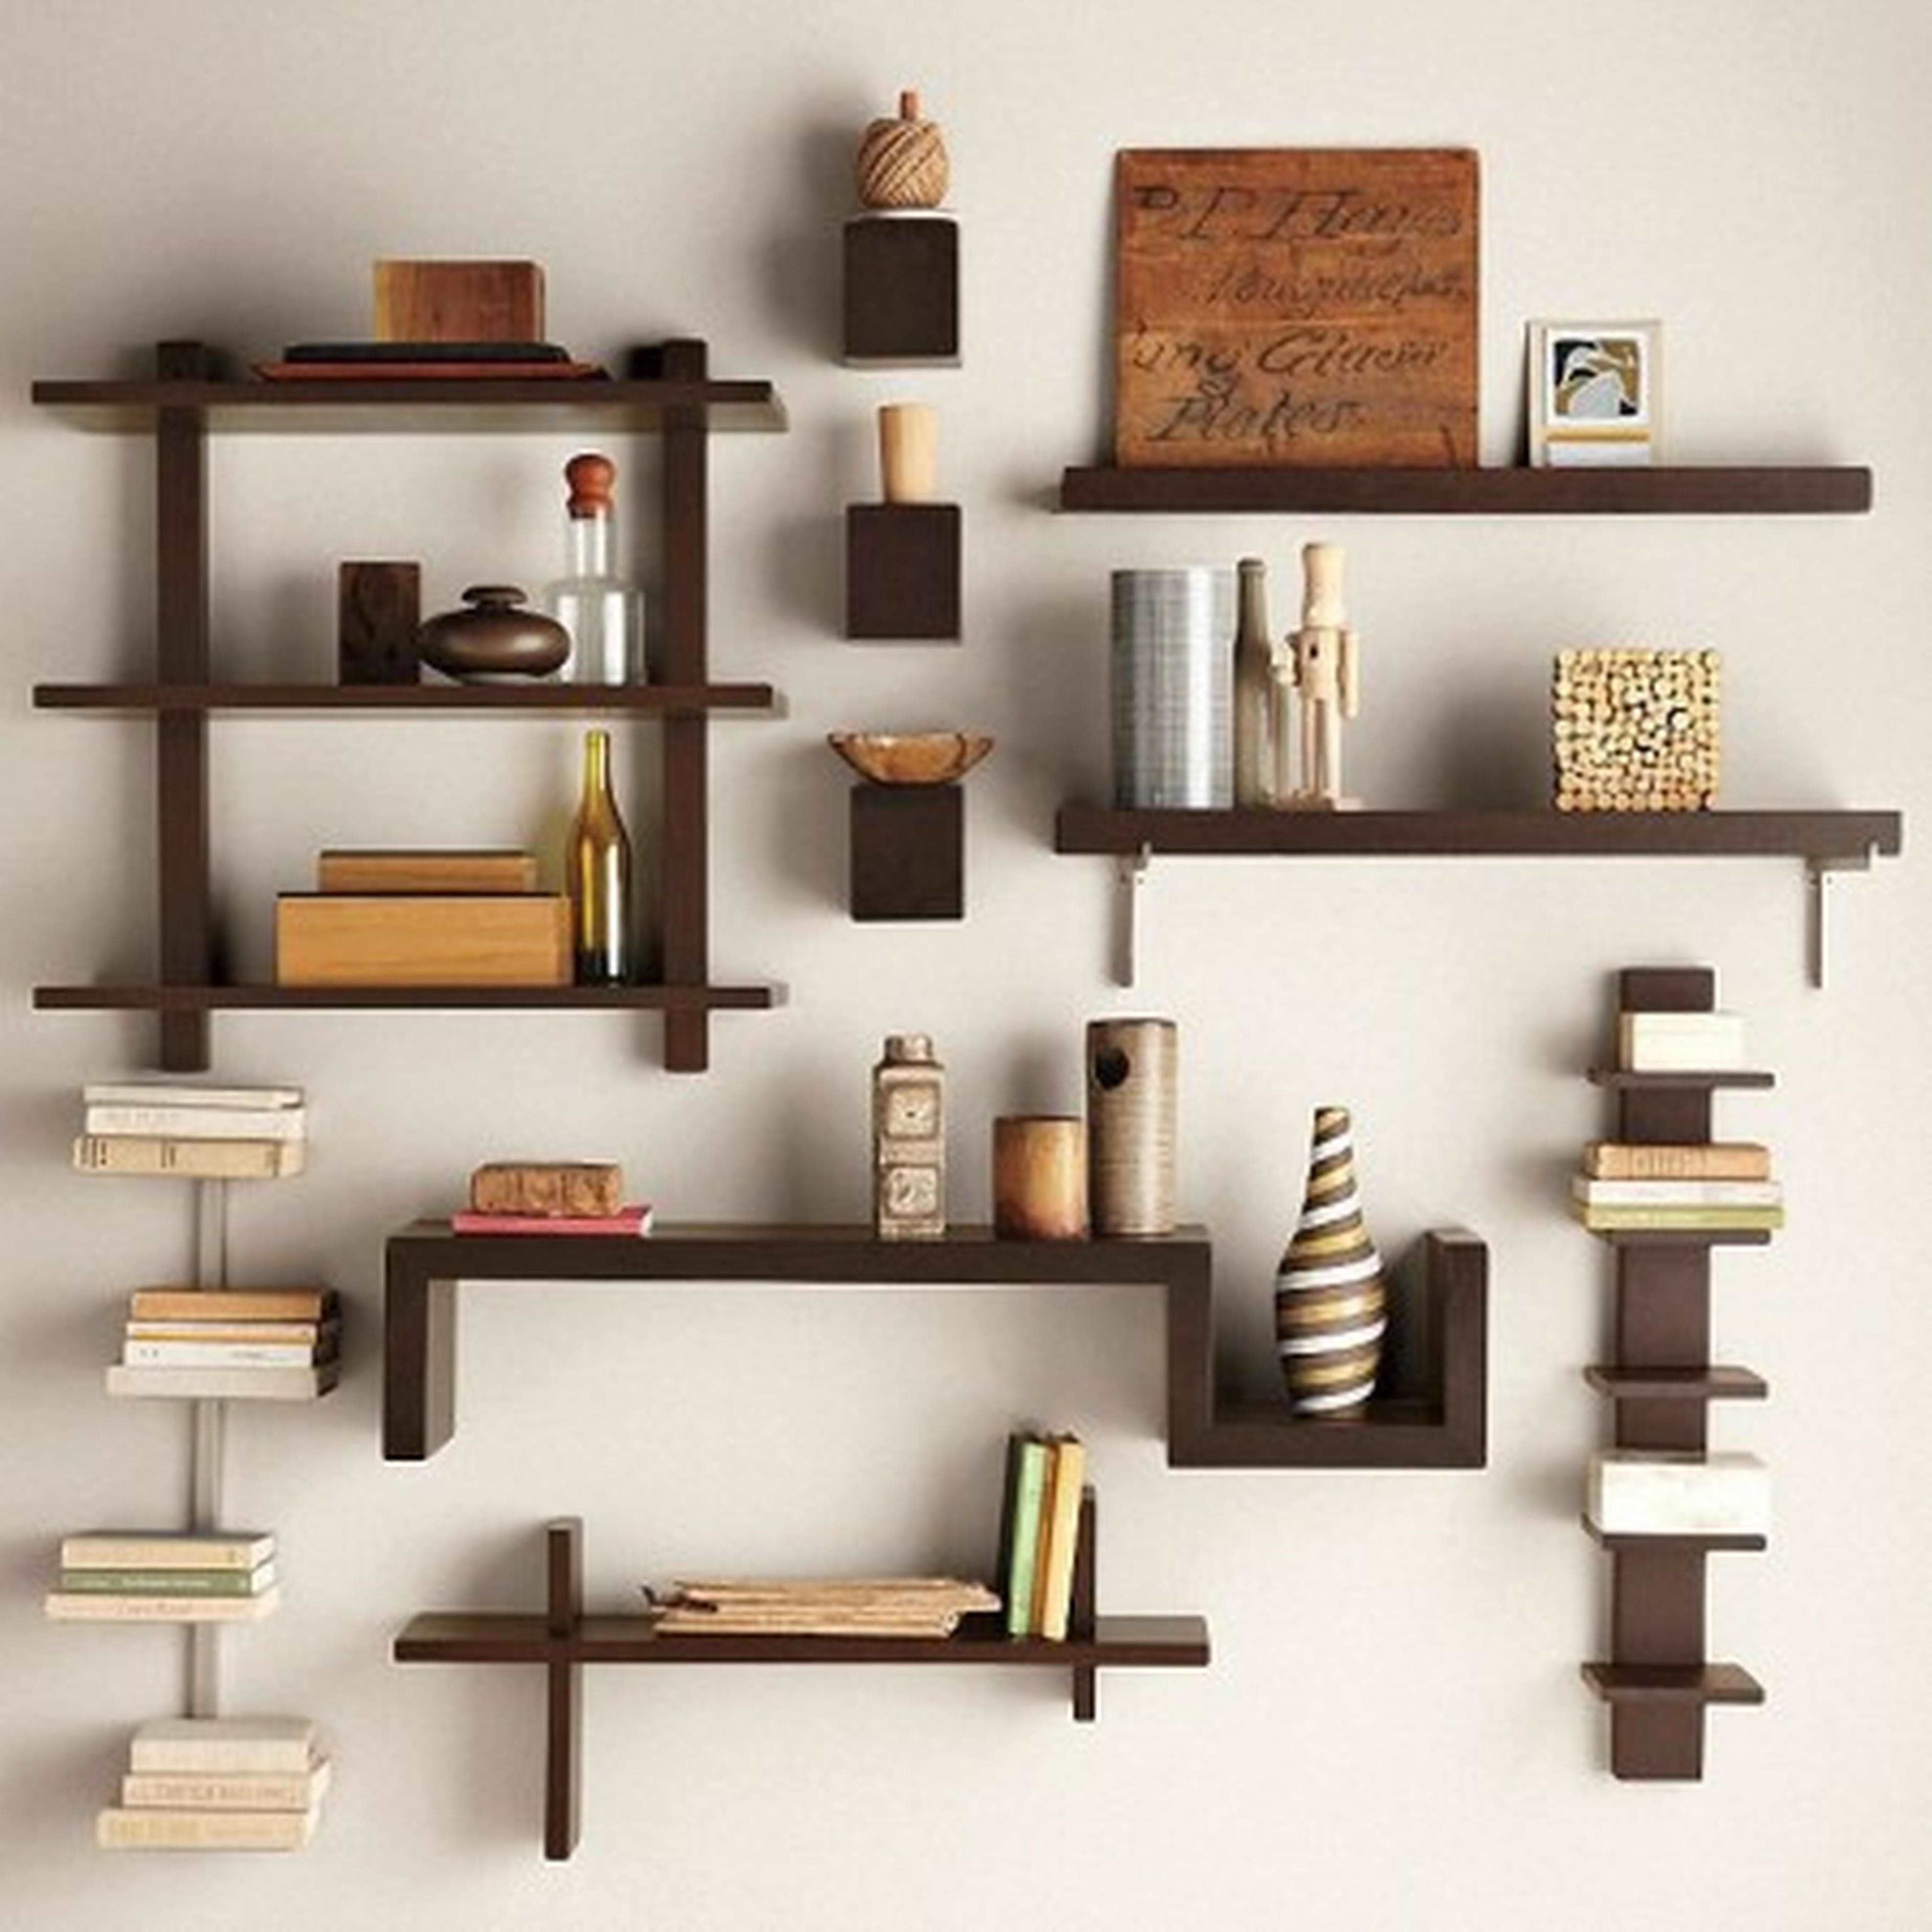 21 Cool Wall Mounted Ledge Vanity In Bedroom Inspiration With Images Floating Shelves Living Room Wall Shelves Design